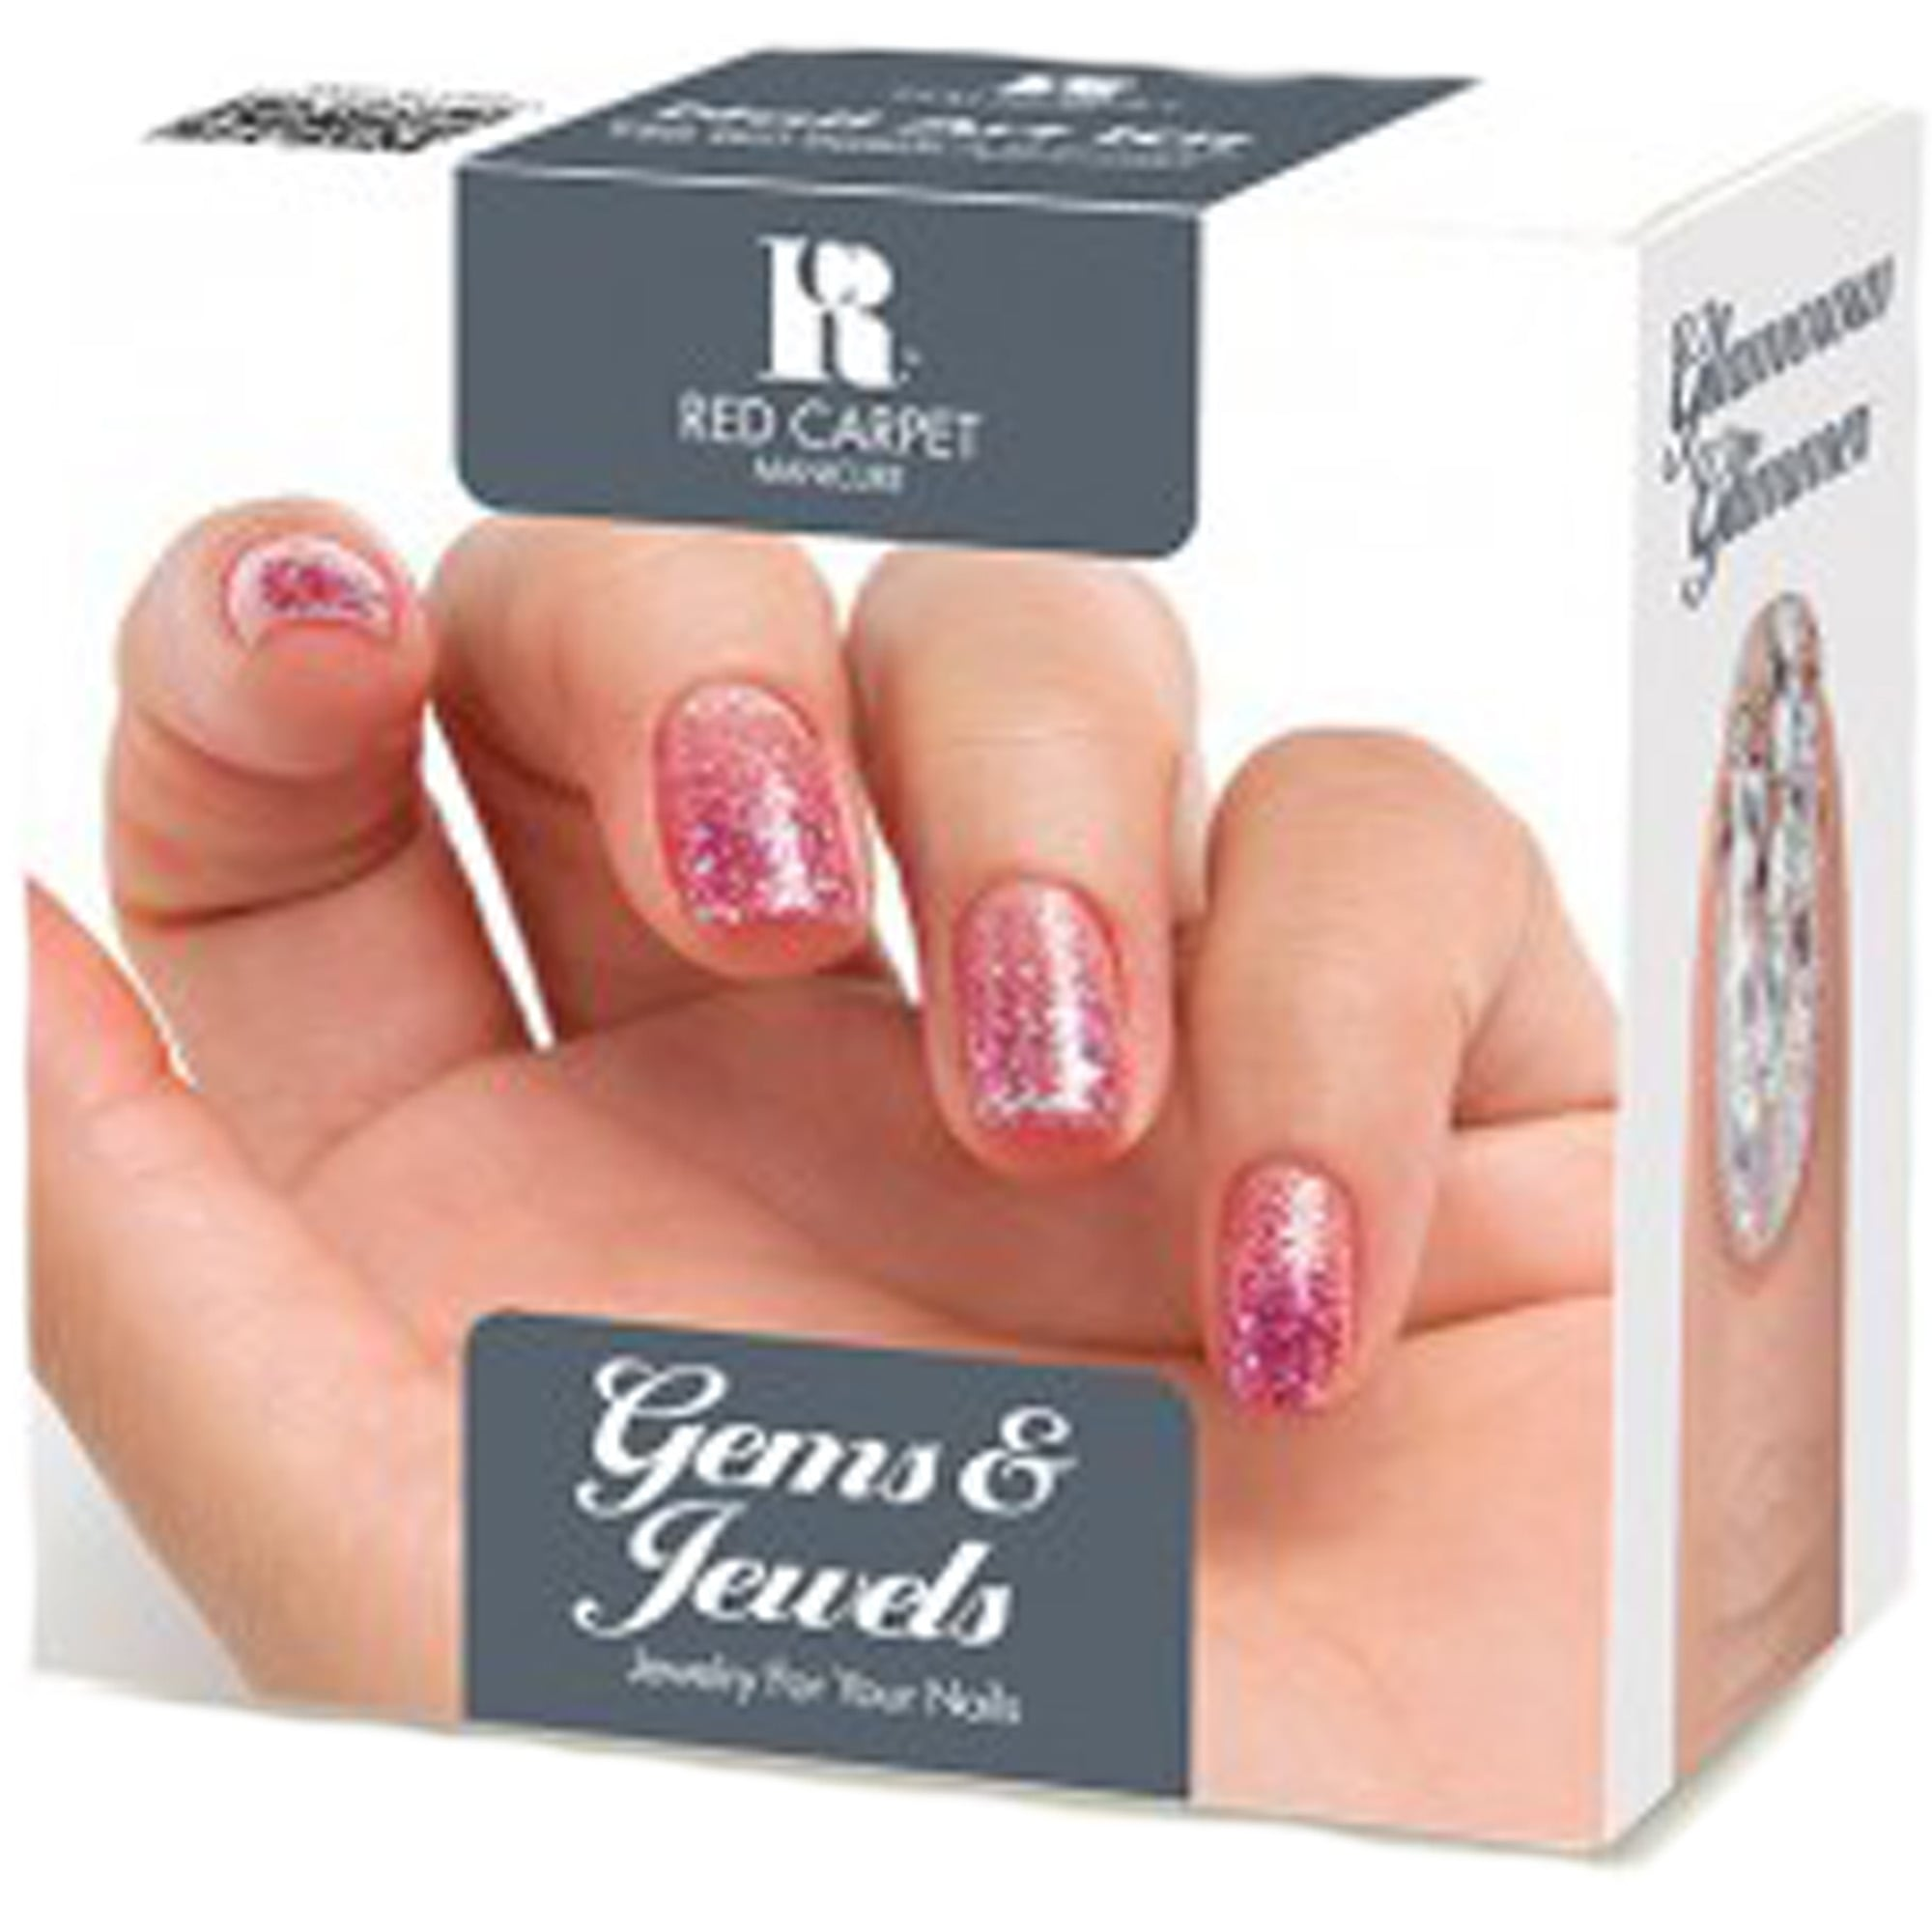 Red Carpet Manicure Gems Jewels Kit Best Selling Nail Art Kits